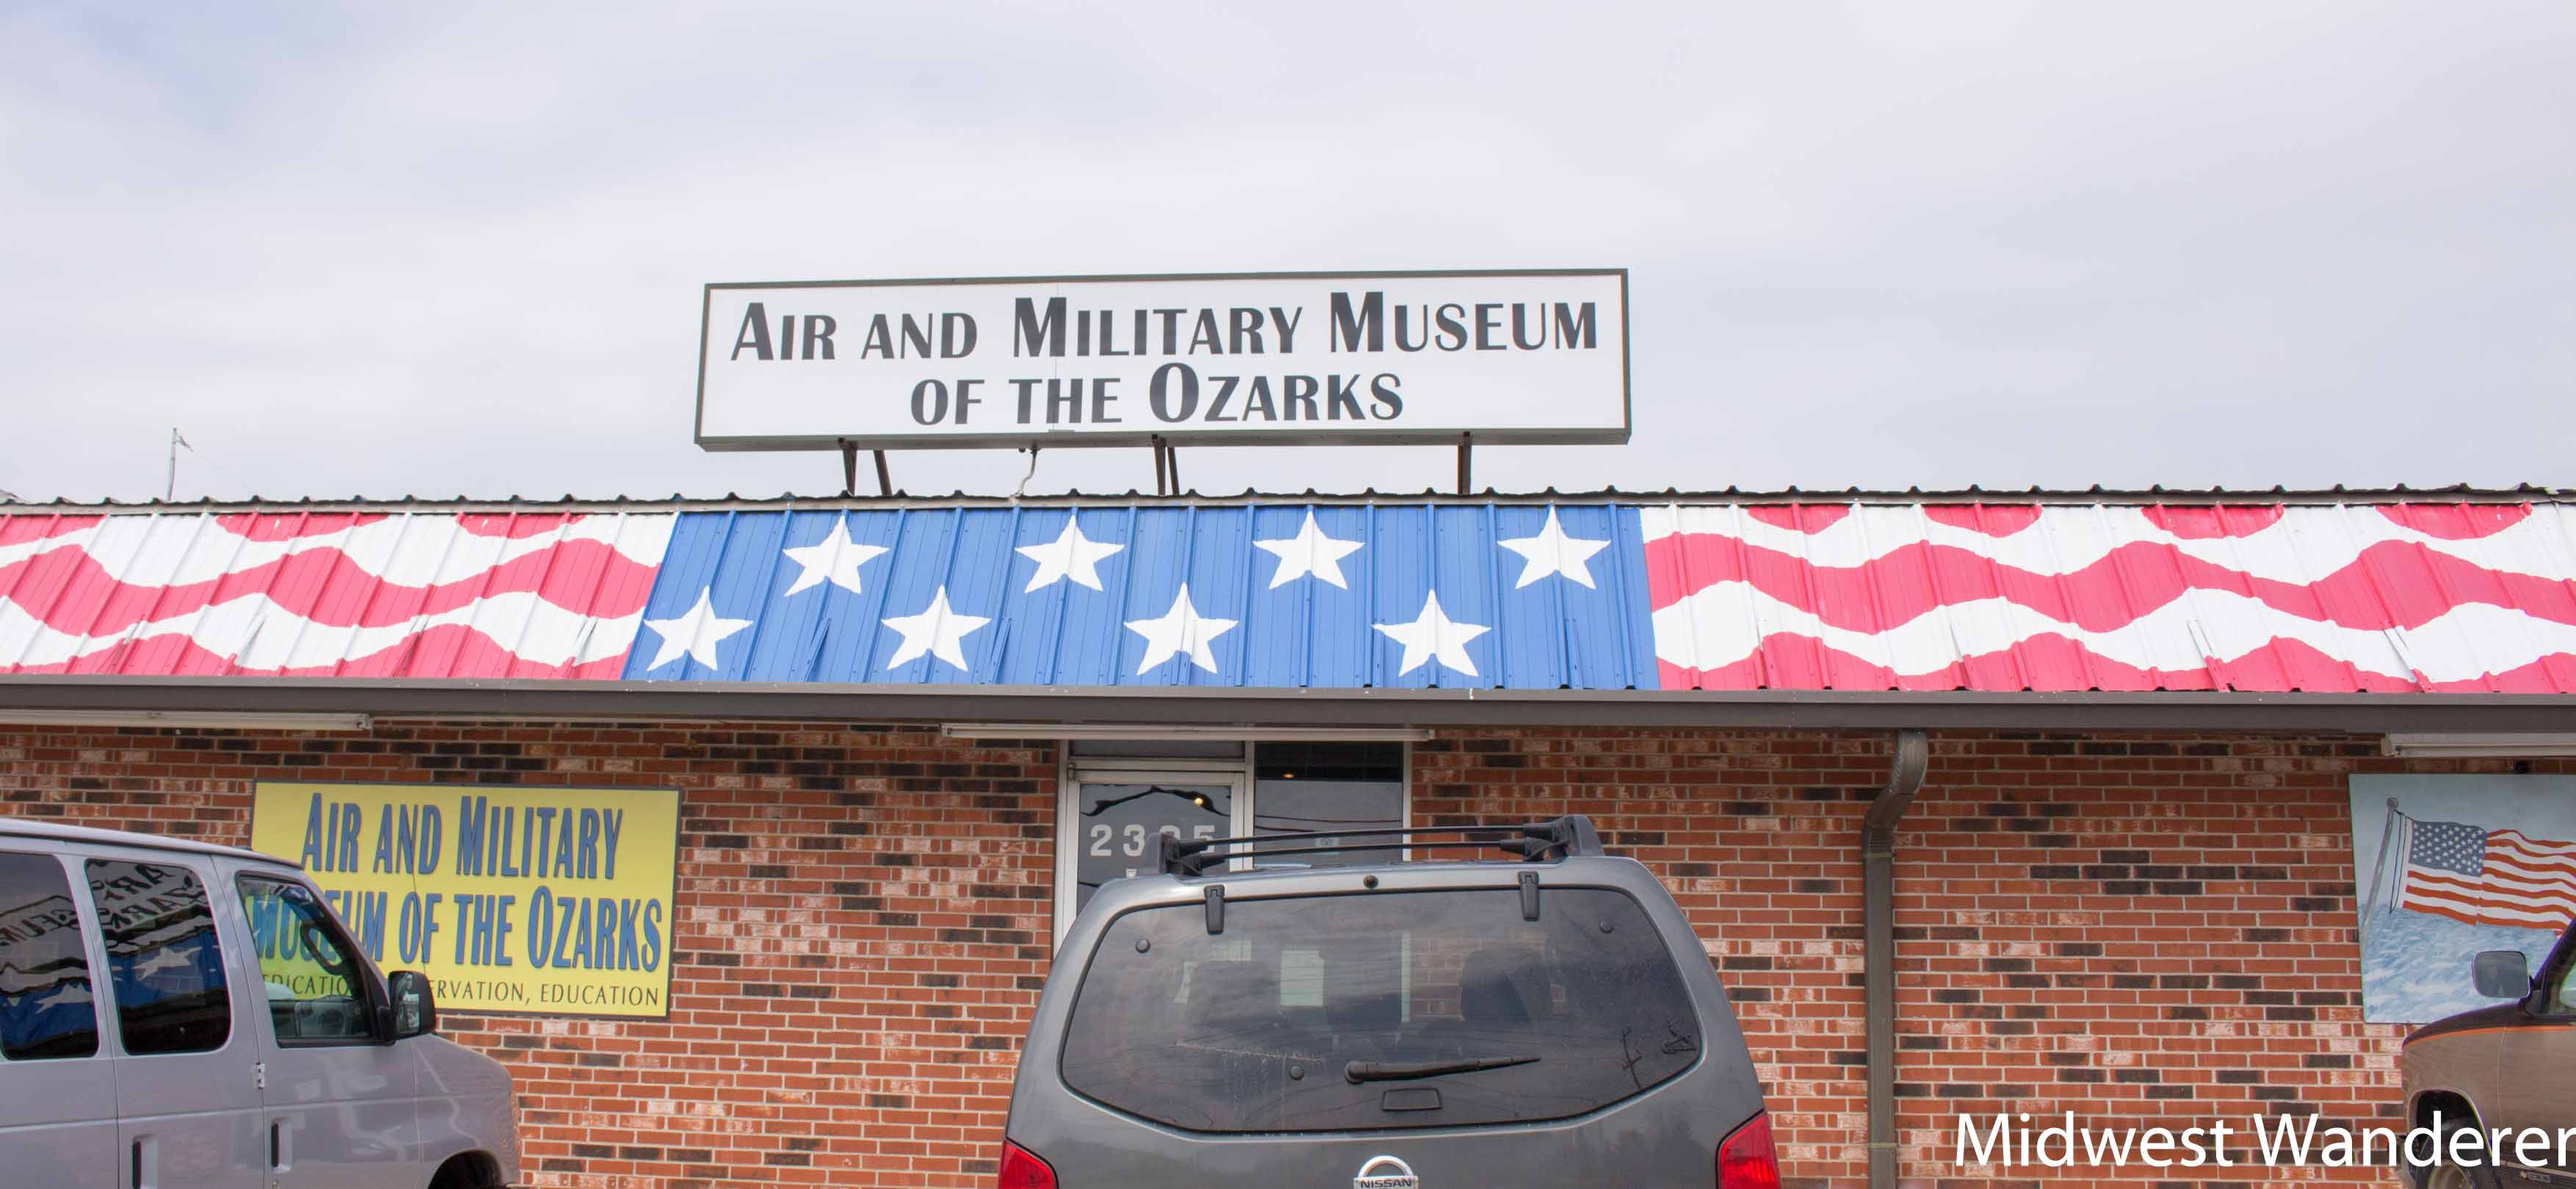 Air and Military Museum of the Ozarks